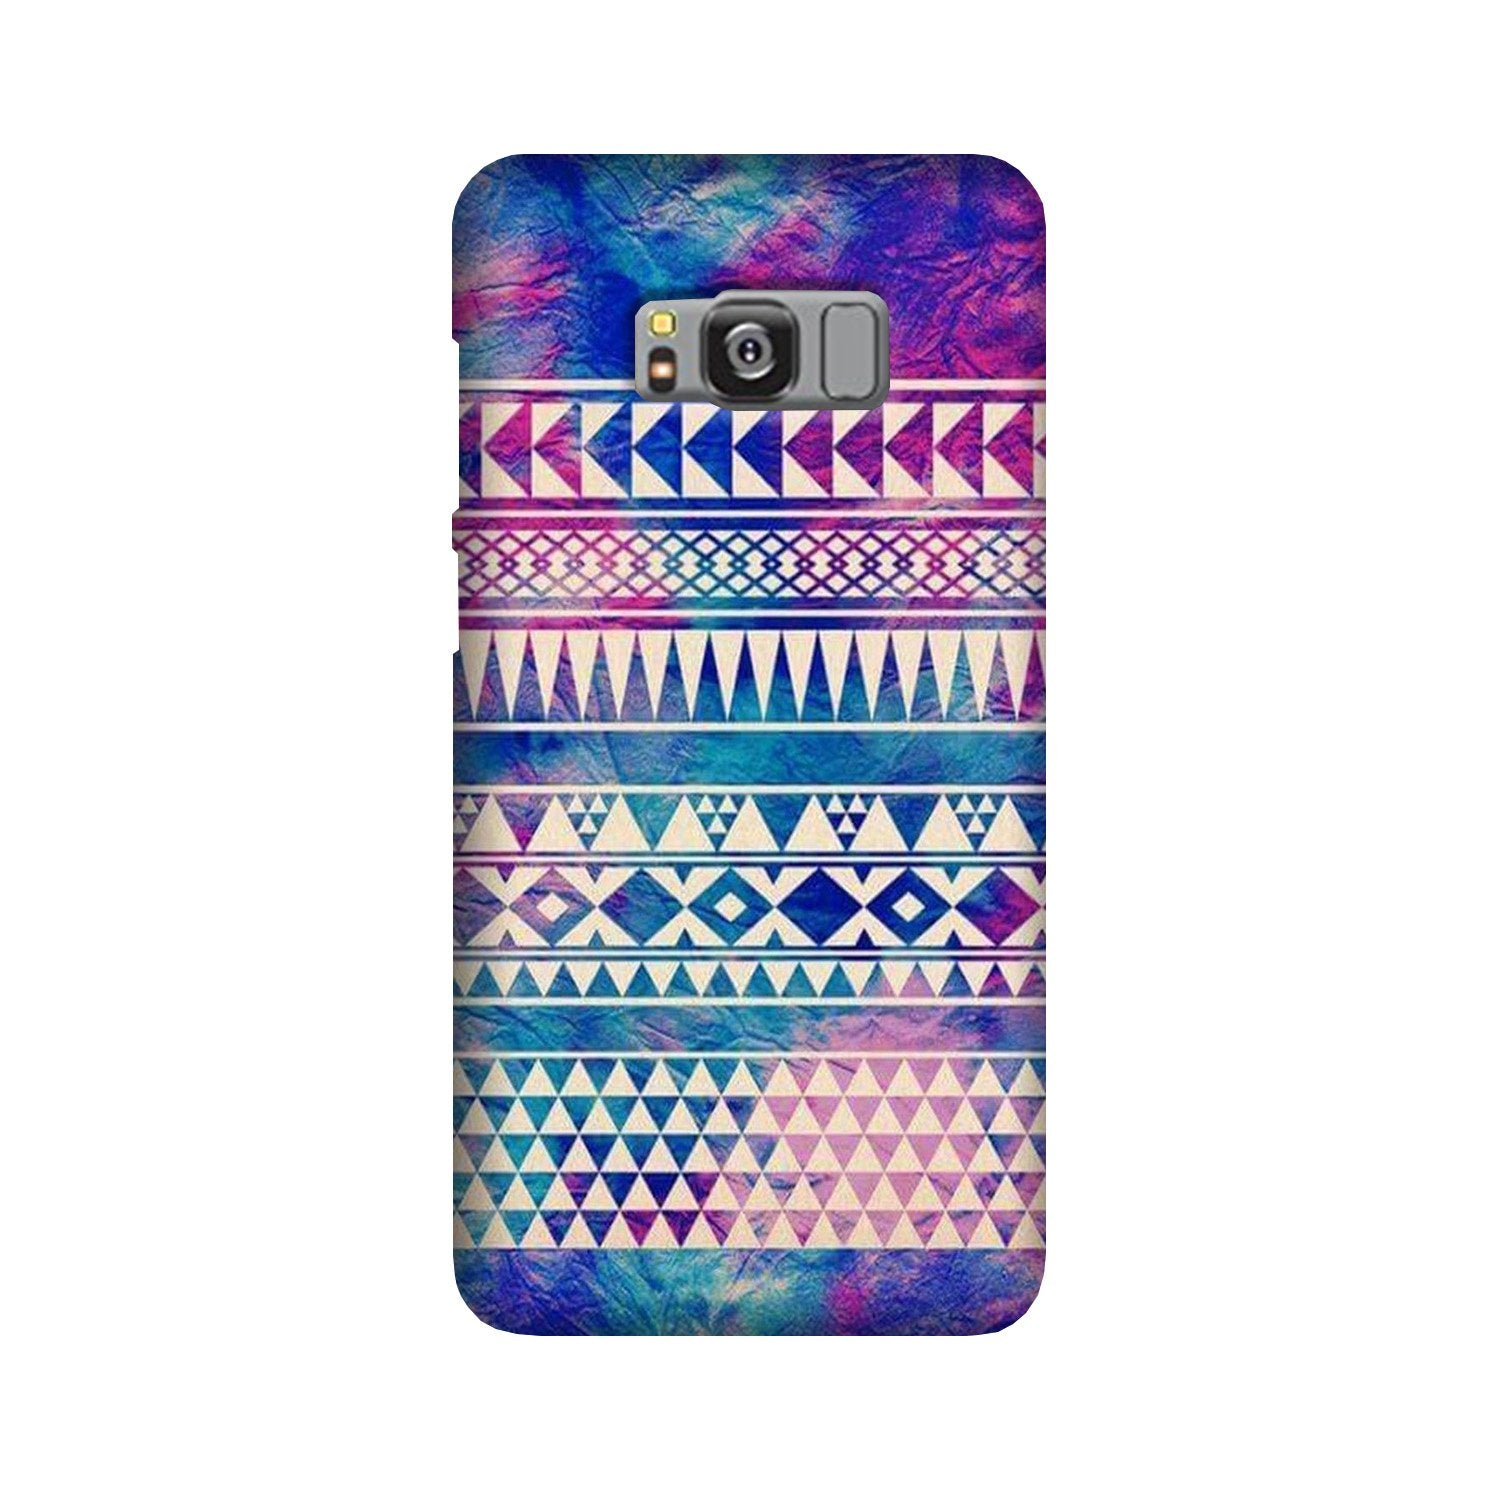 Modern Art Case for Galaxy S8